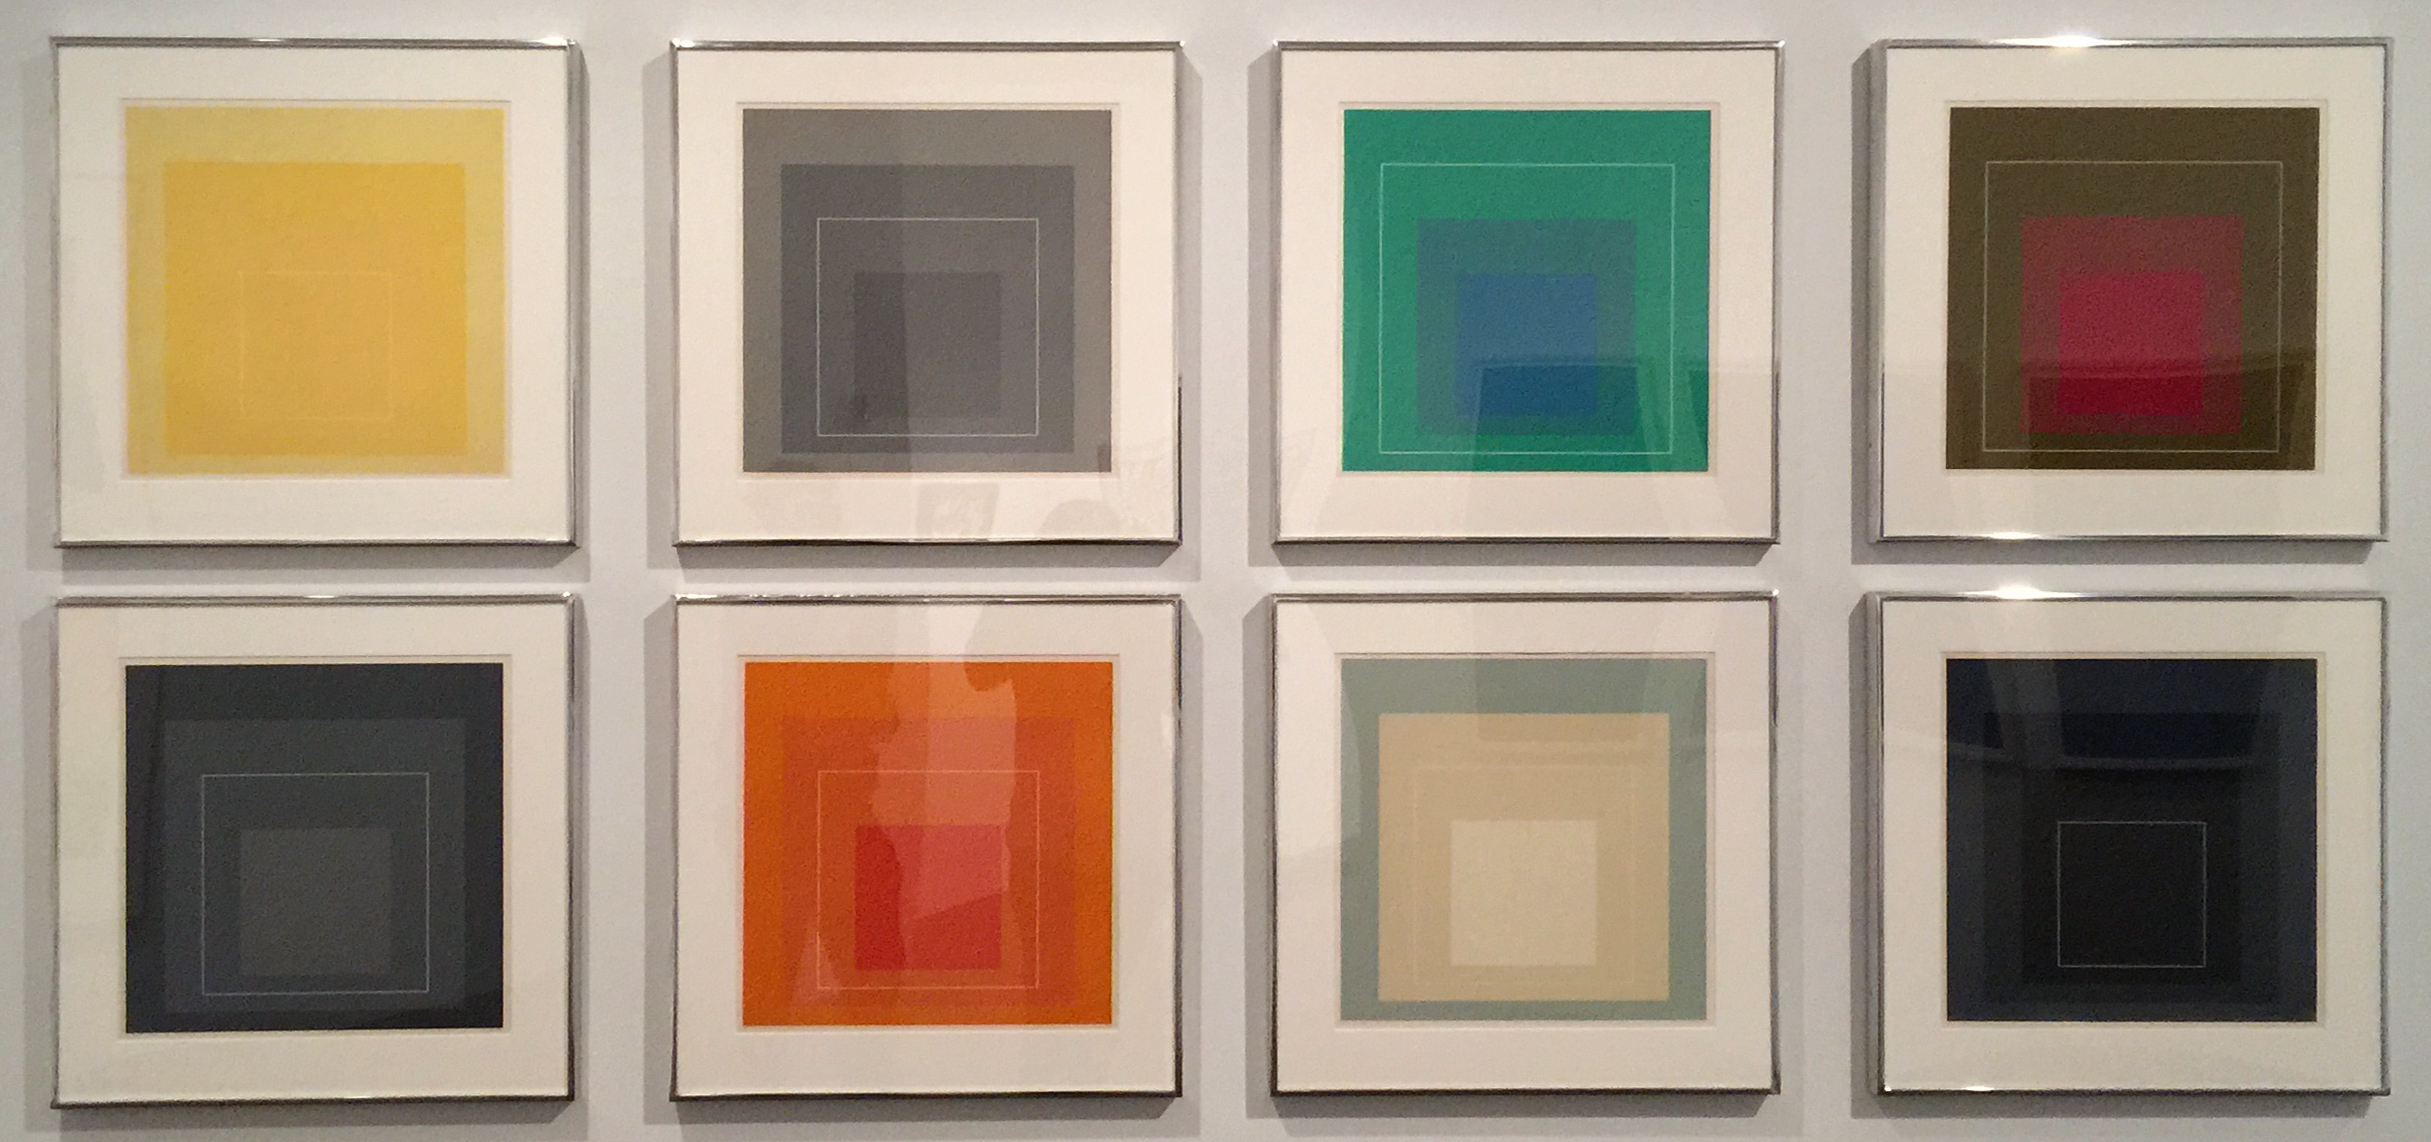 Color Studies by Josef Albers. I imagine the man envisioned a relatively colorful future.